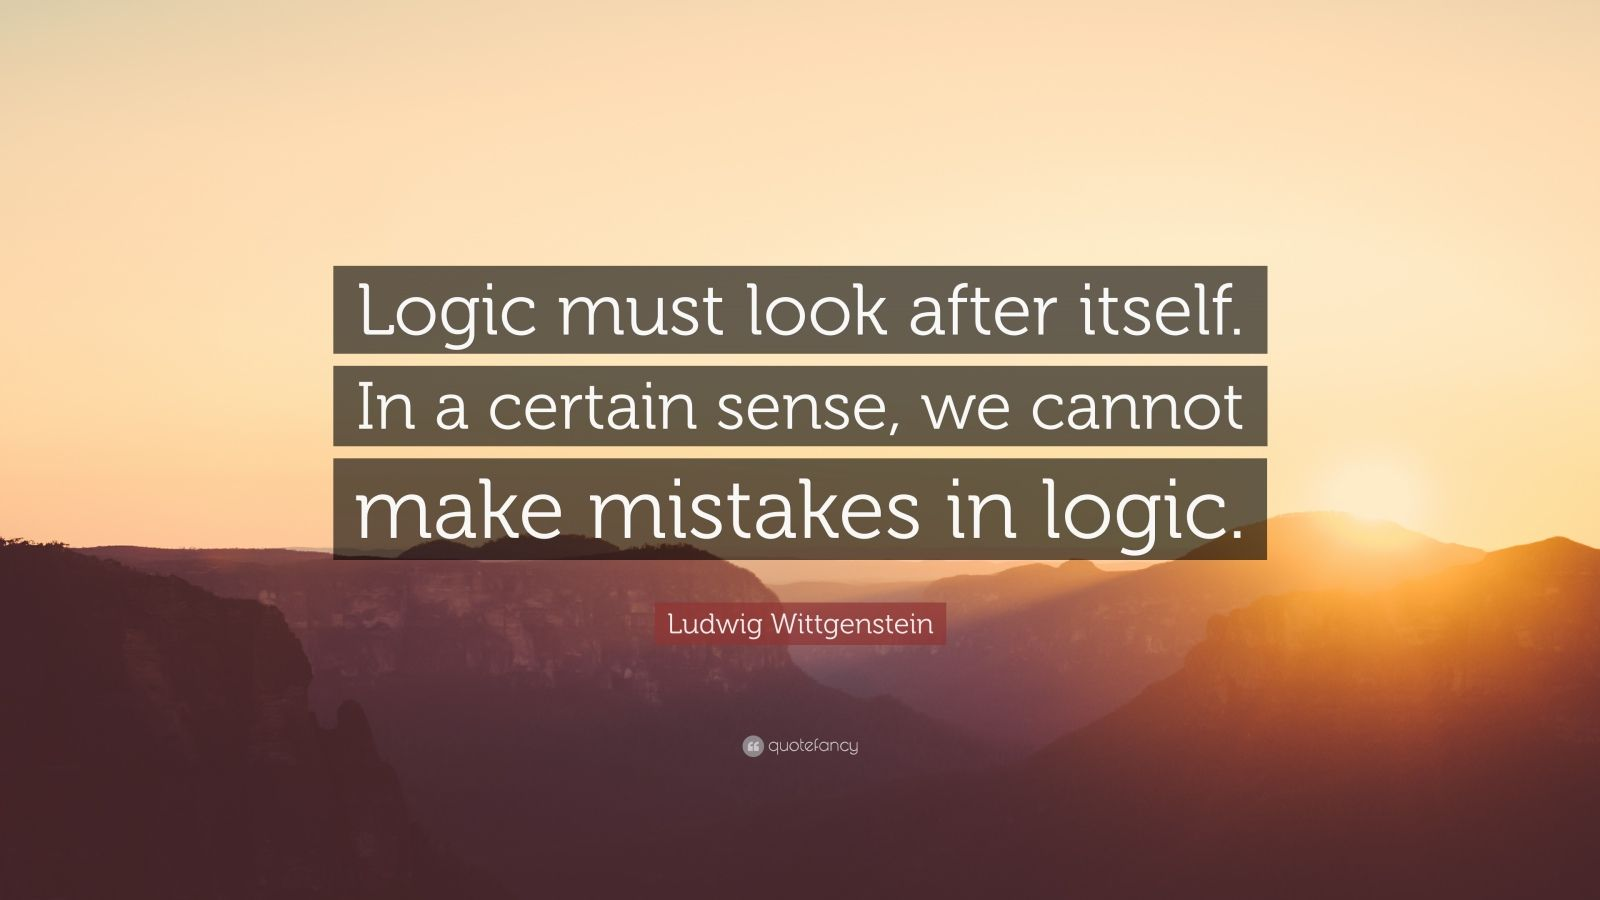 """Ludwig Wittgenstein Quote: """"Logic must look after itself. In a certain sense, we cannot make mistakes in logic."""""""